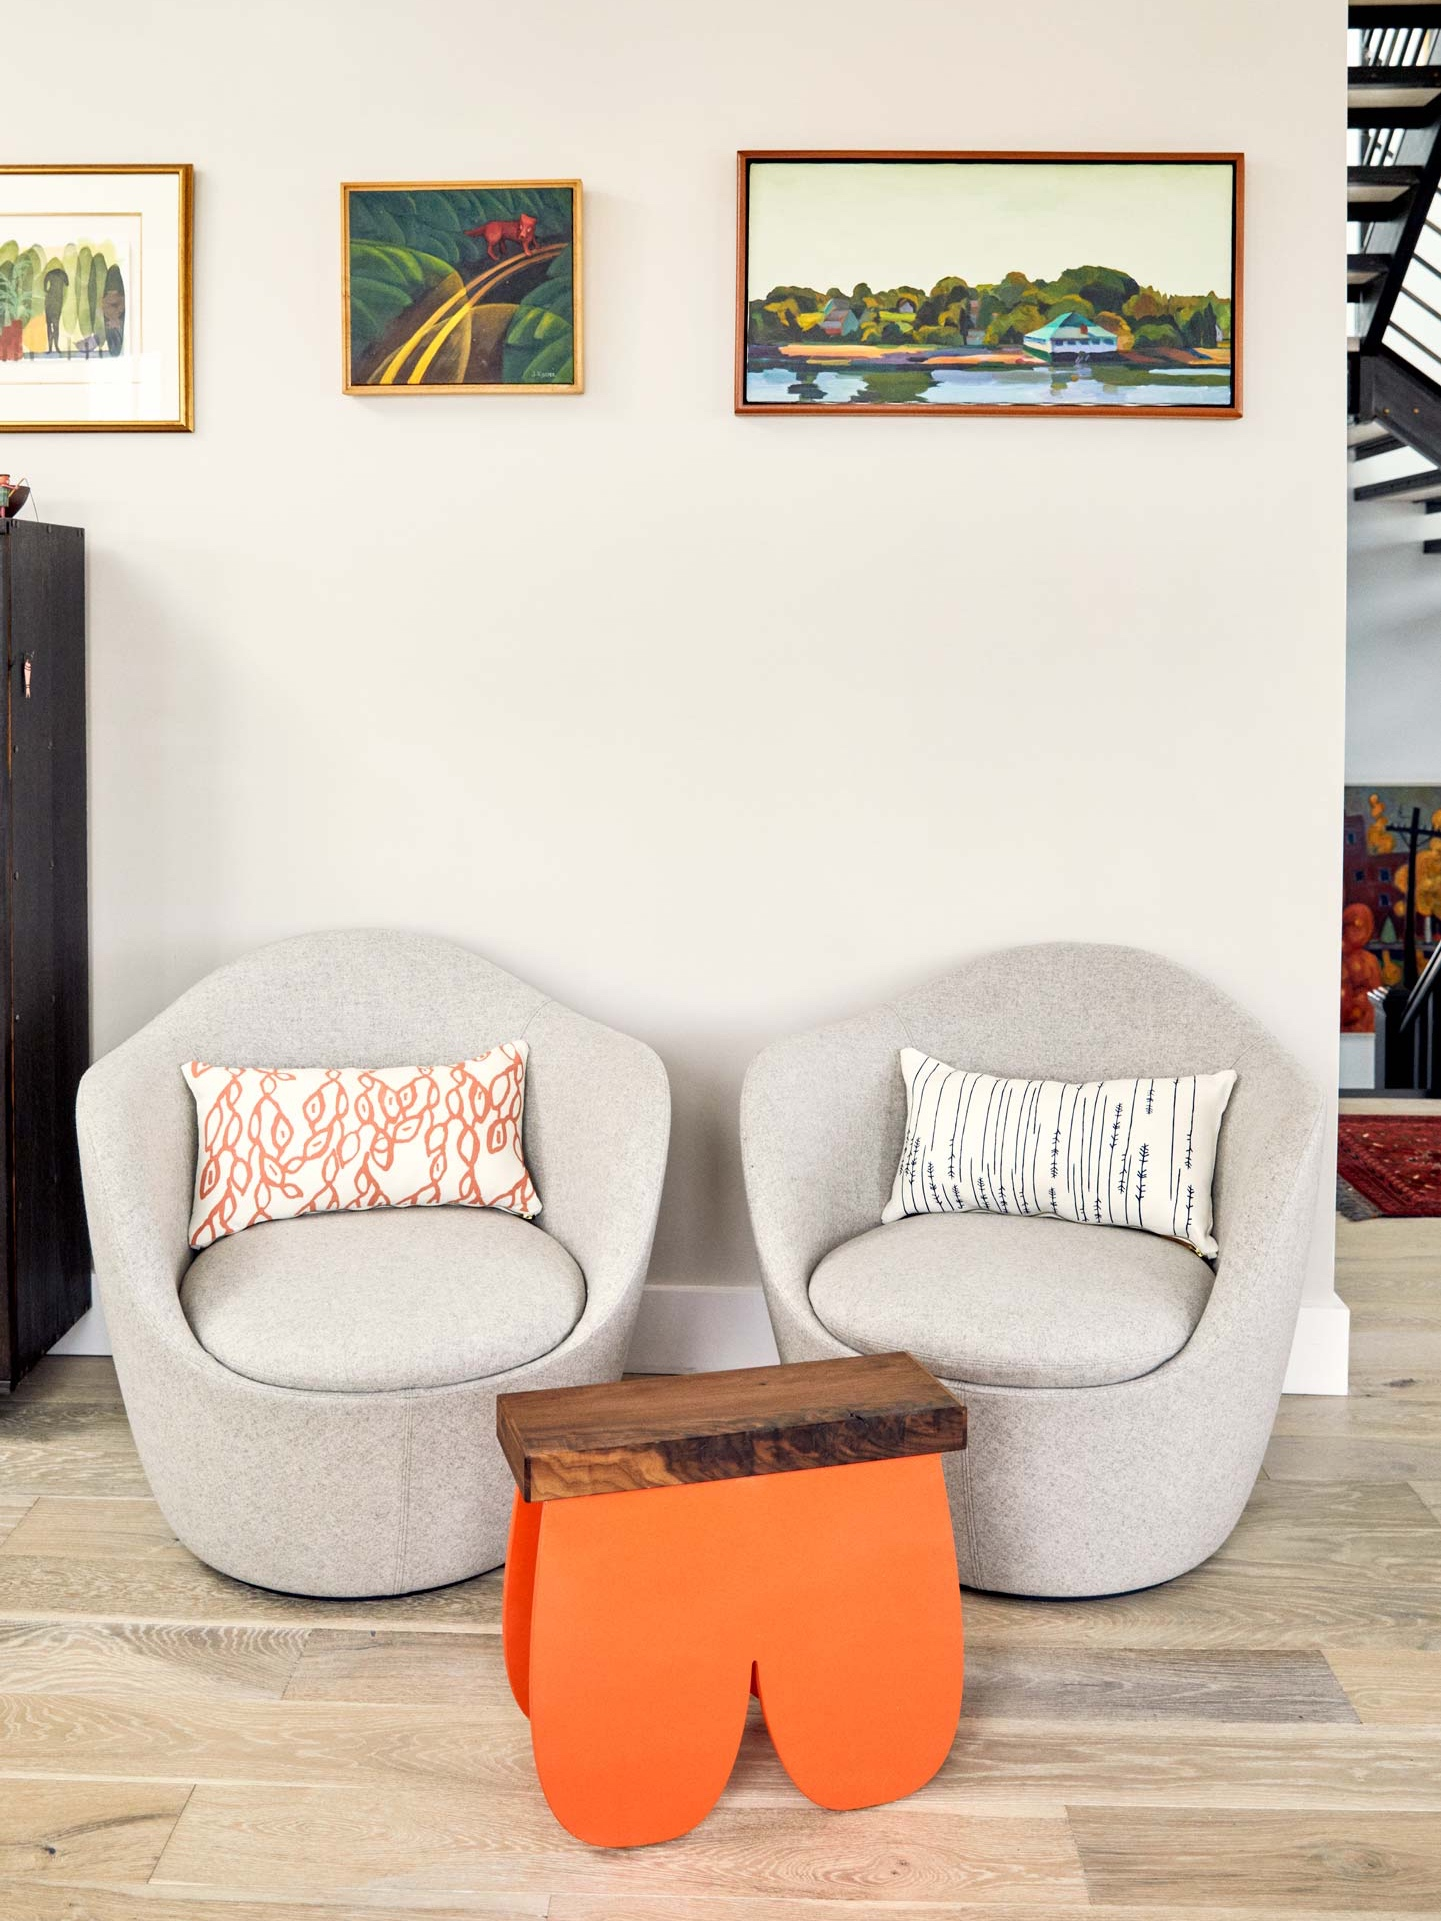 A pair of chairs from Design Within Reach hold pillows by Erin Flett. The shapely occasional table by Peter Dore illustrates Soozie's love for humorous touches.